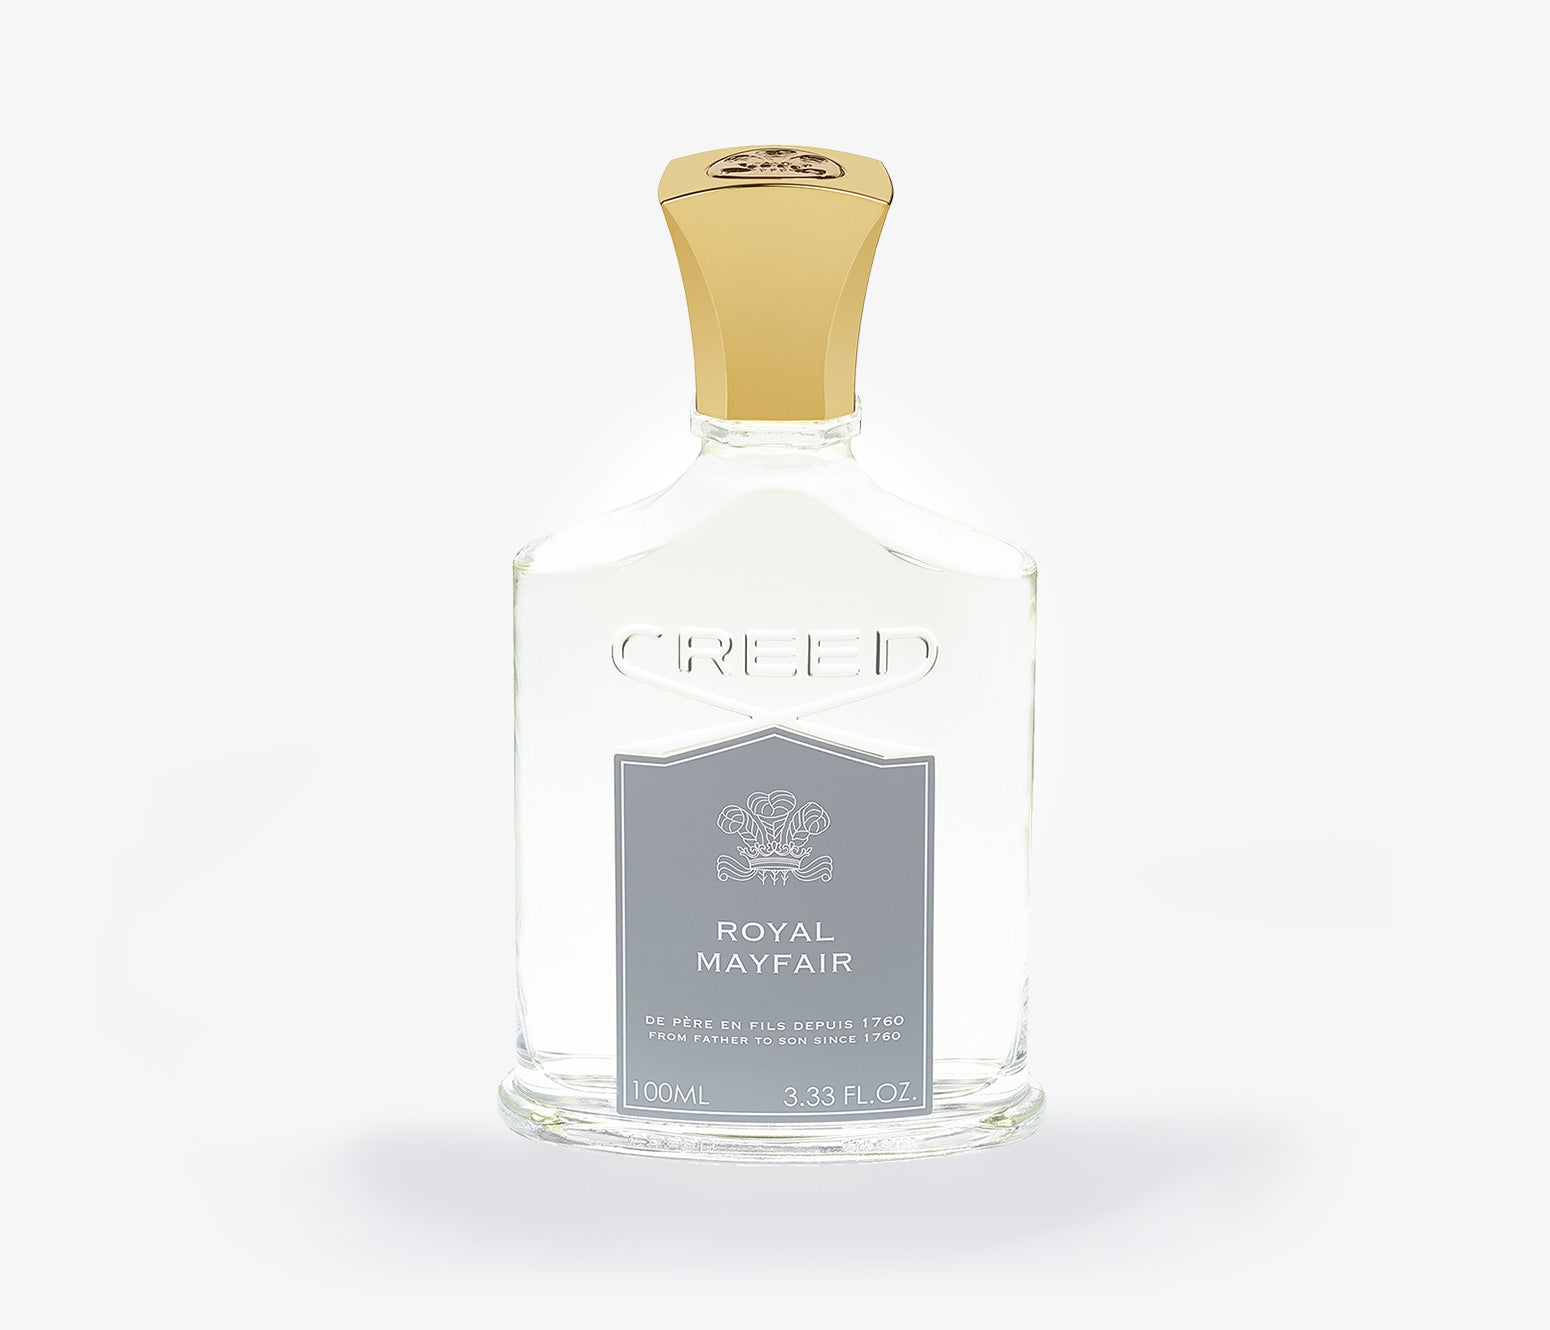 Creed - Royal Mayfair - 50ml - RPH001 - Product Image - Fragrance - Les Senteurs